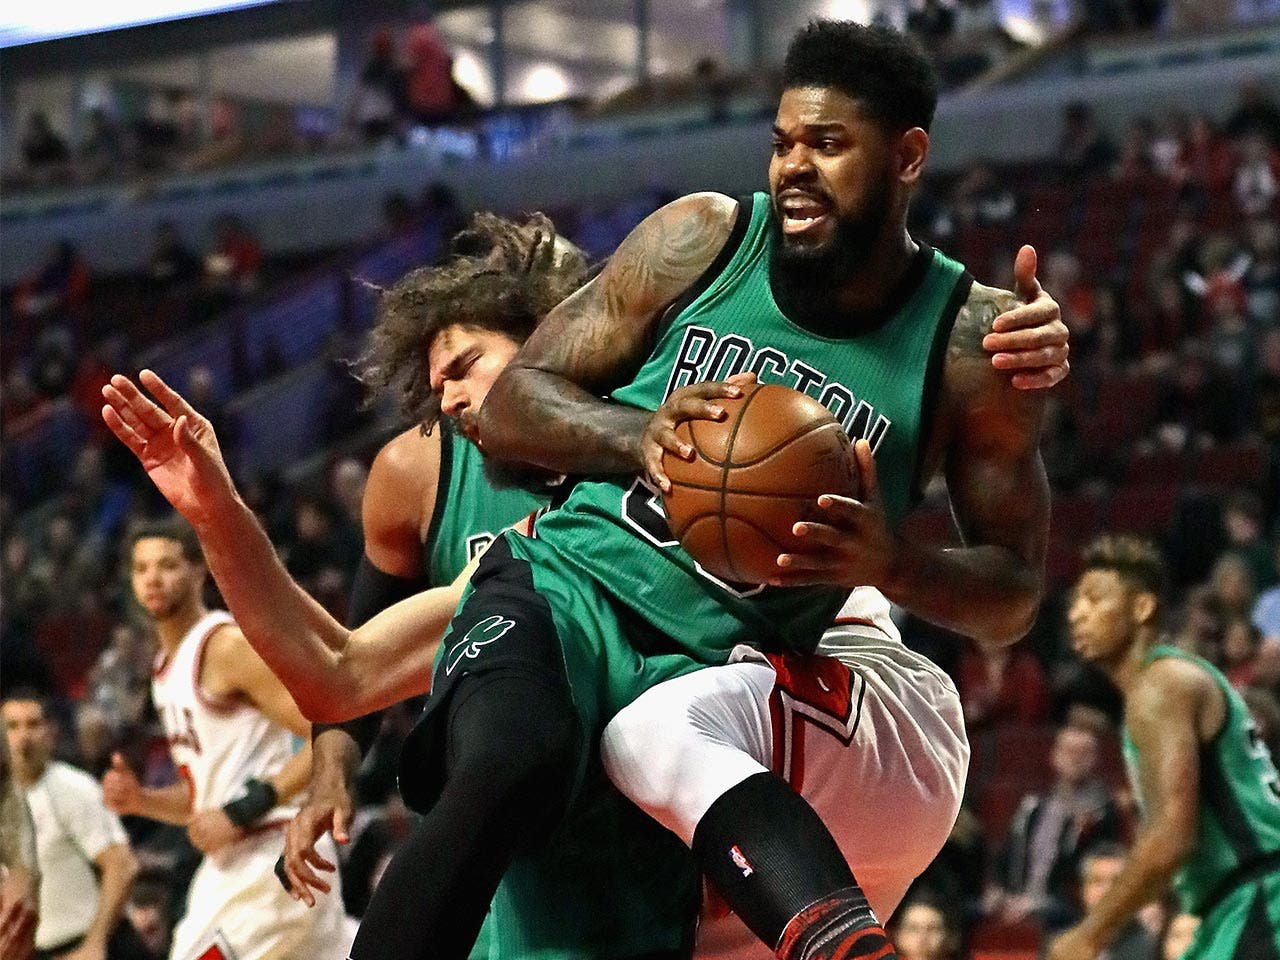 Boston Celtics | Jonathan Daniel/Getty Images